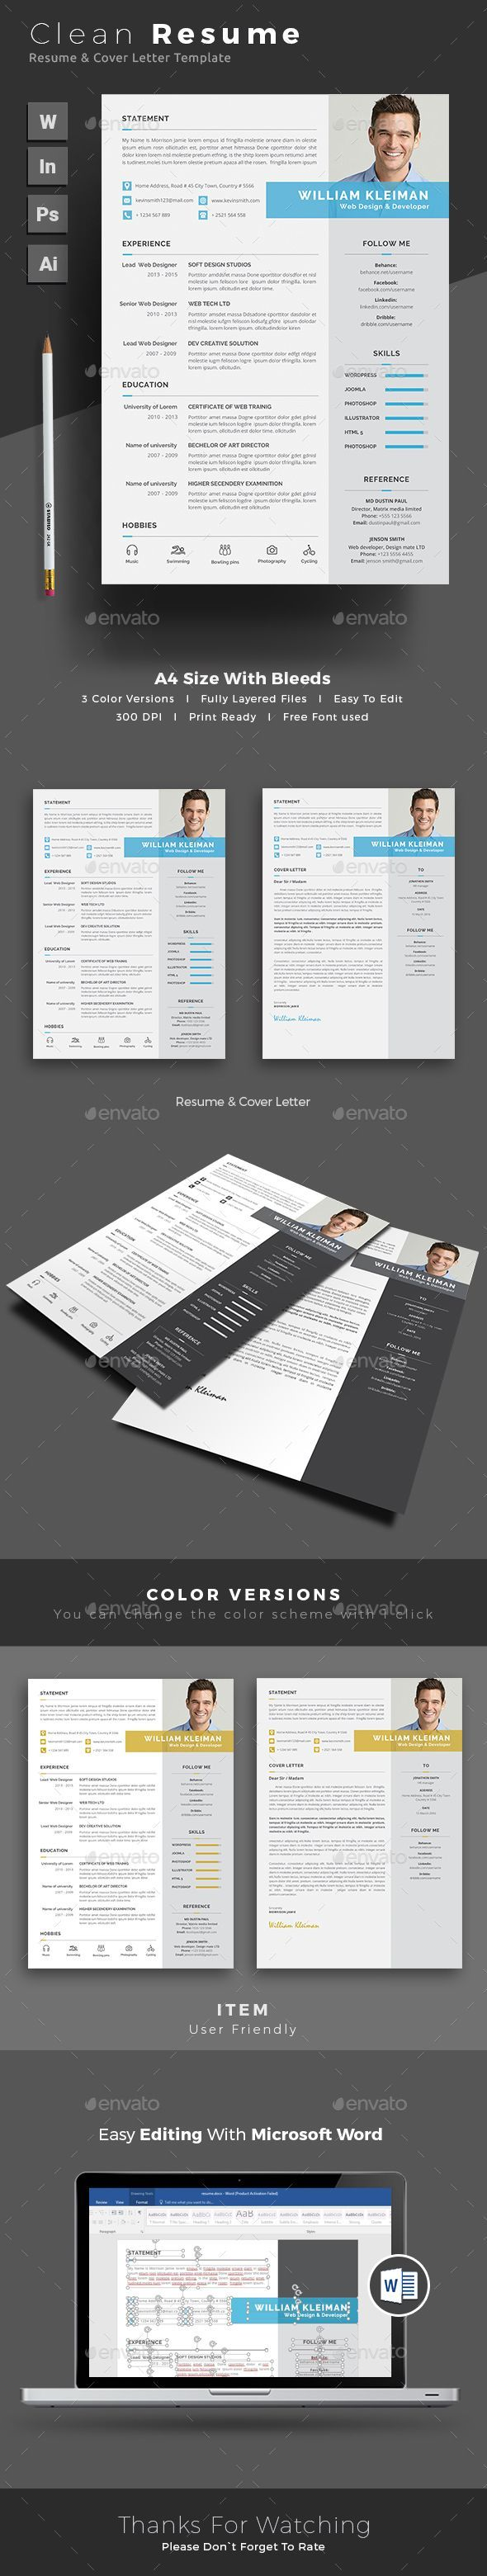 graphic design resume objective%0A  Resume  Resumes  Stationery Download here  https   graphicriver net